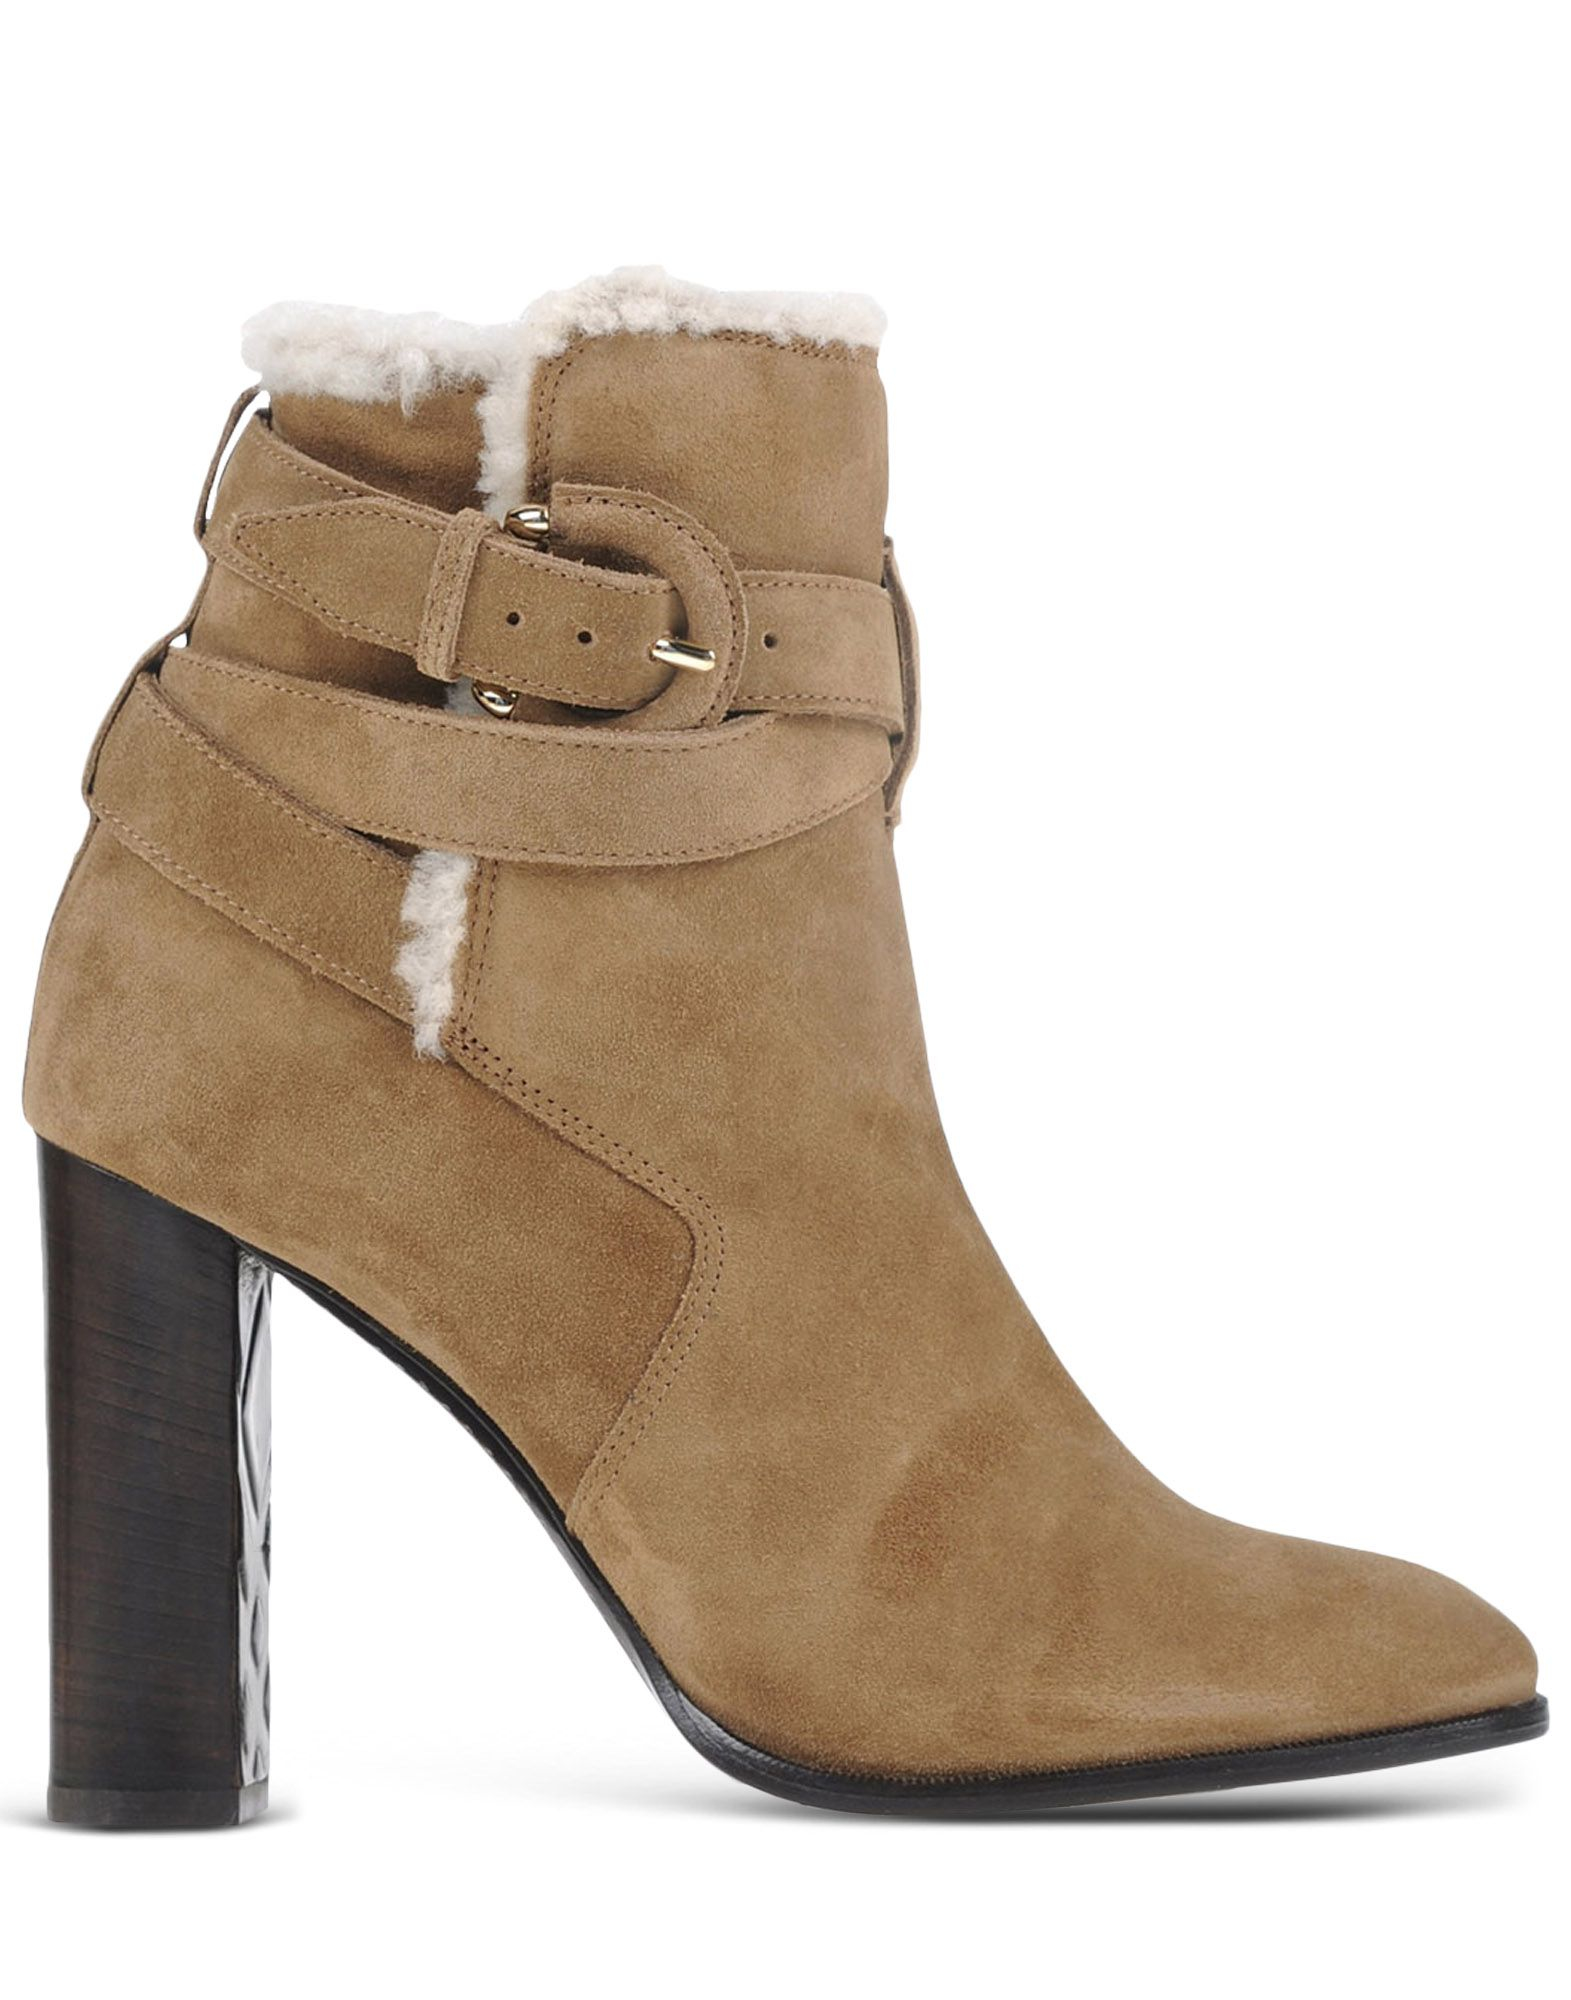 burberry suede ankle boots in khaki lyst. Black Bedroom Furniture Sets. Home Design Ideas